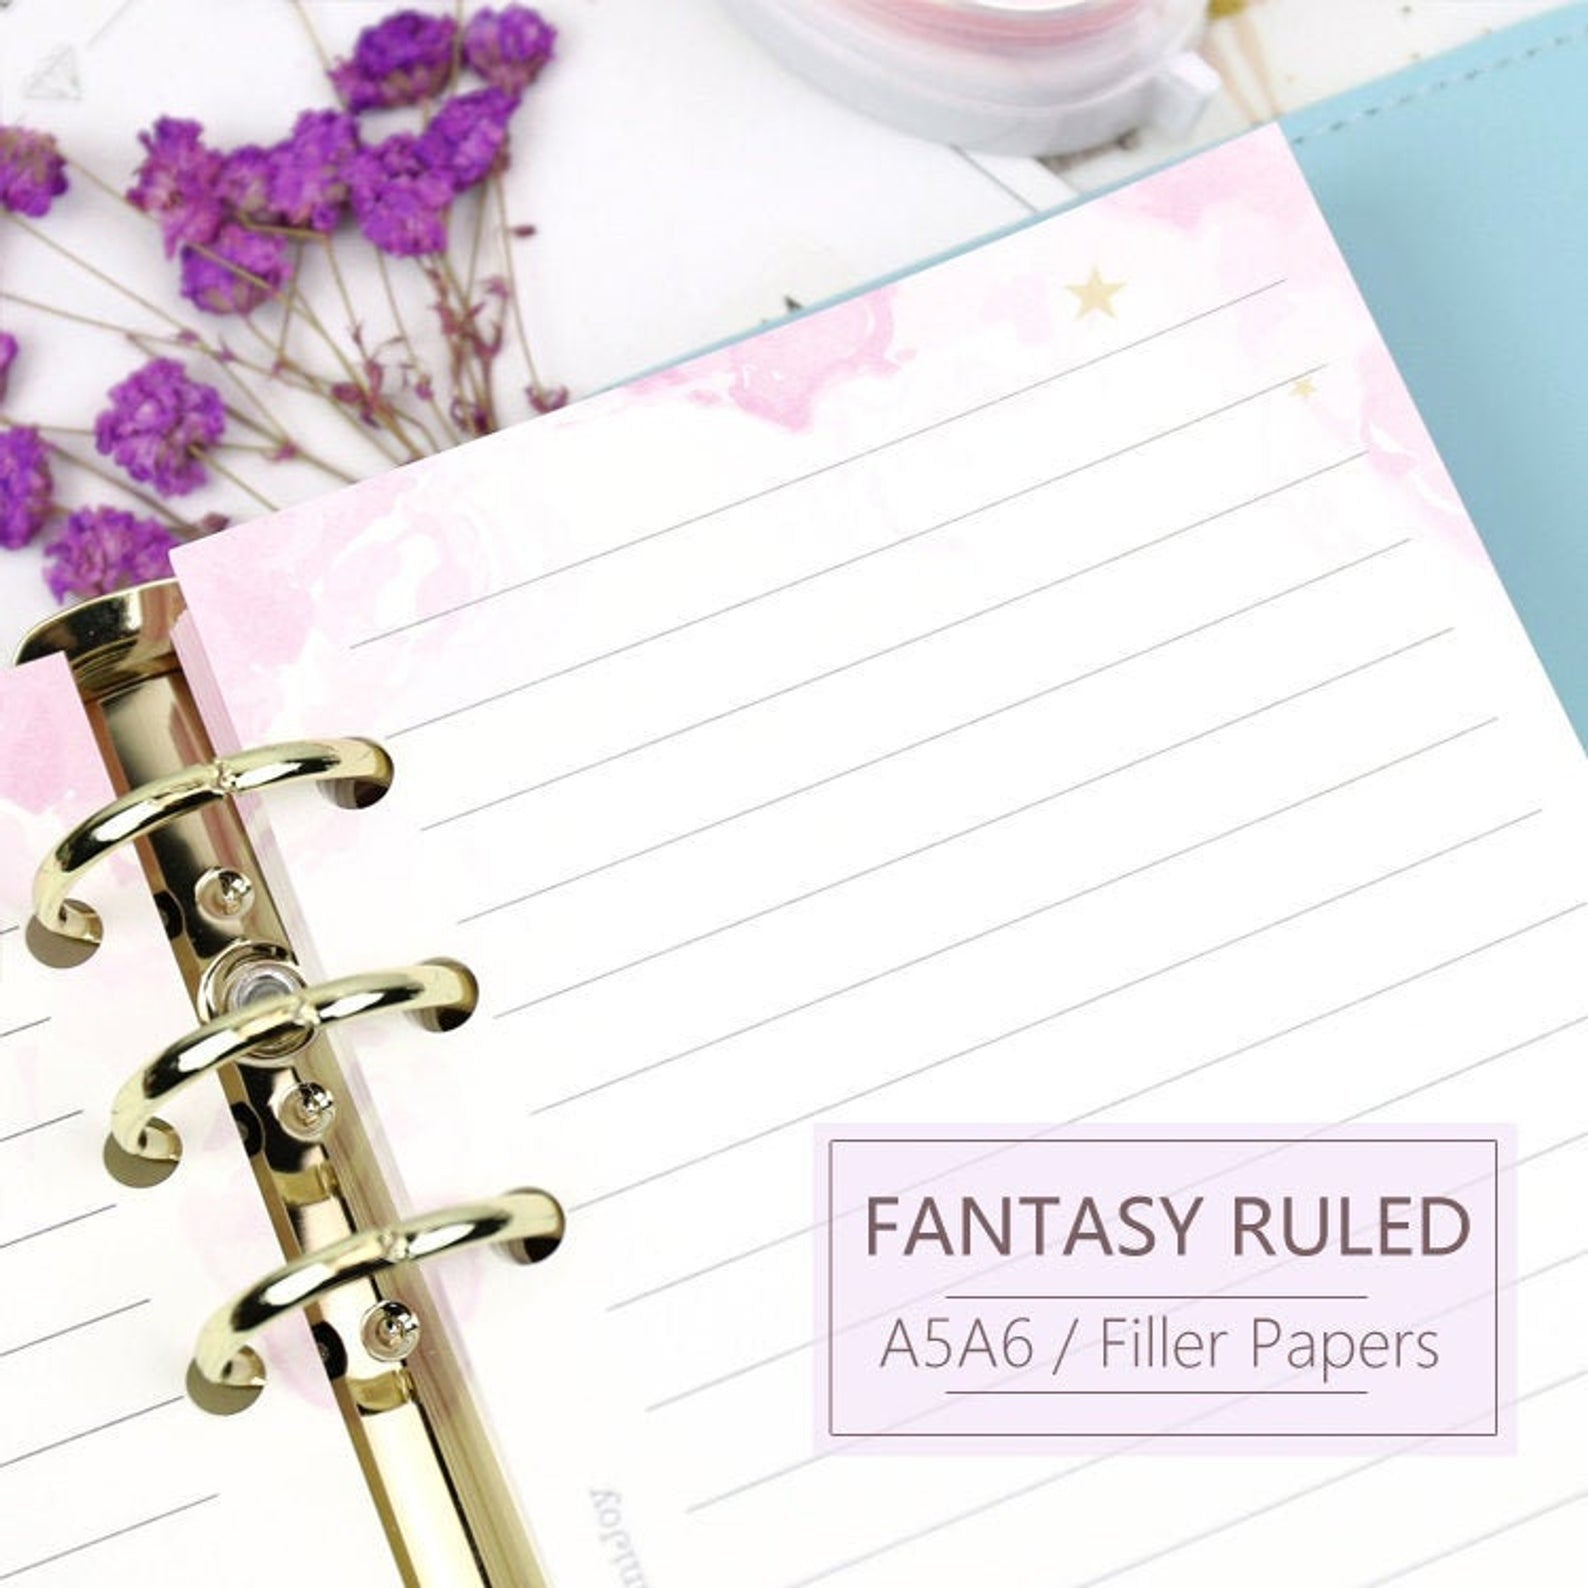 A5/A6 Fantasy Ruled Line Binder Planner Refills (40 Sheets)